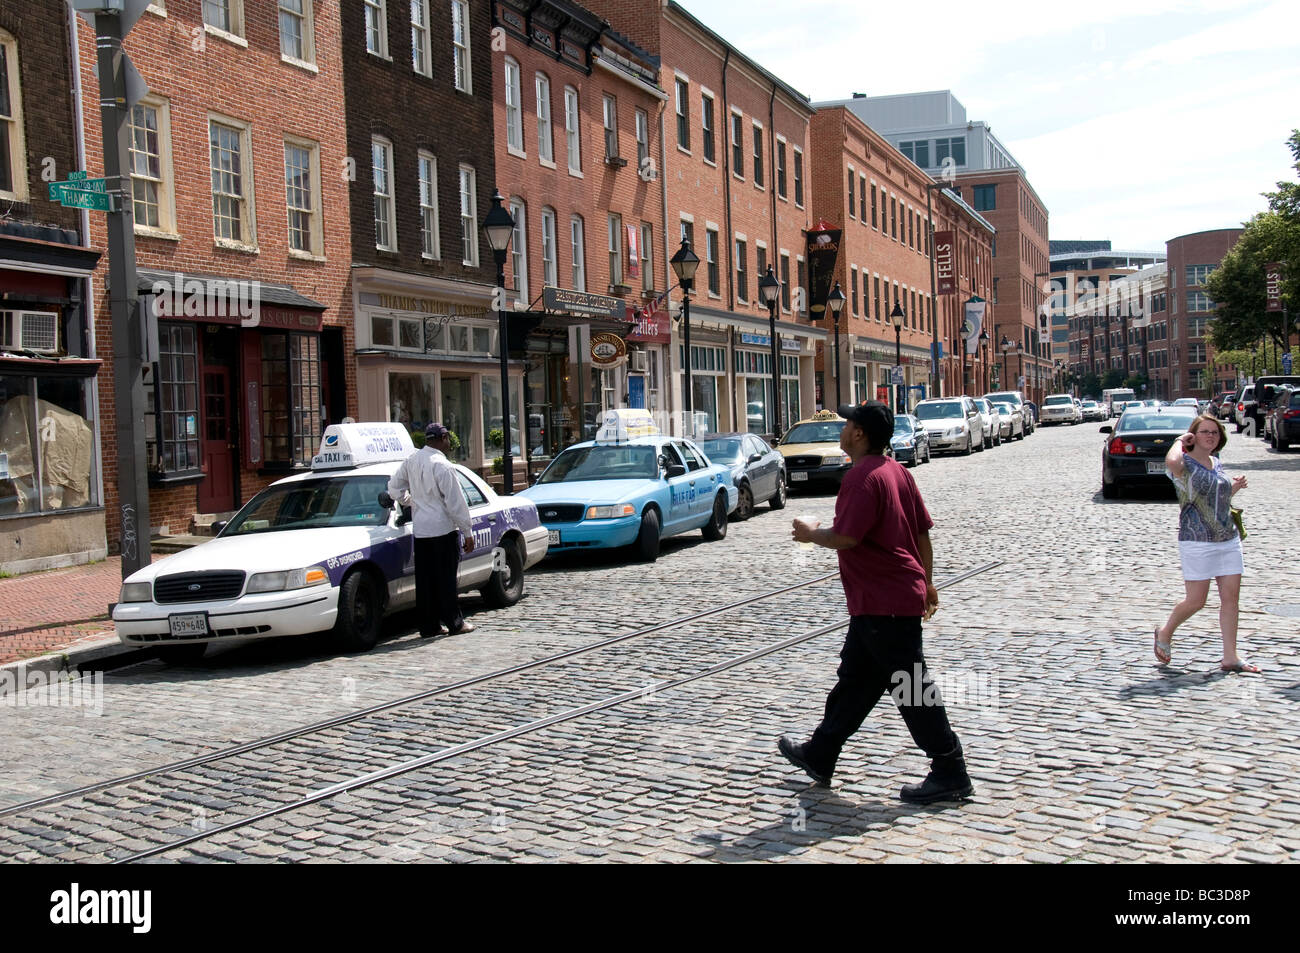 Street scenes in Baltimore MD USA. - Stock Image